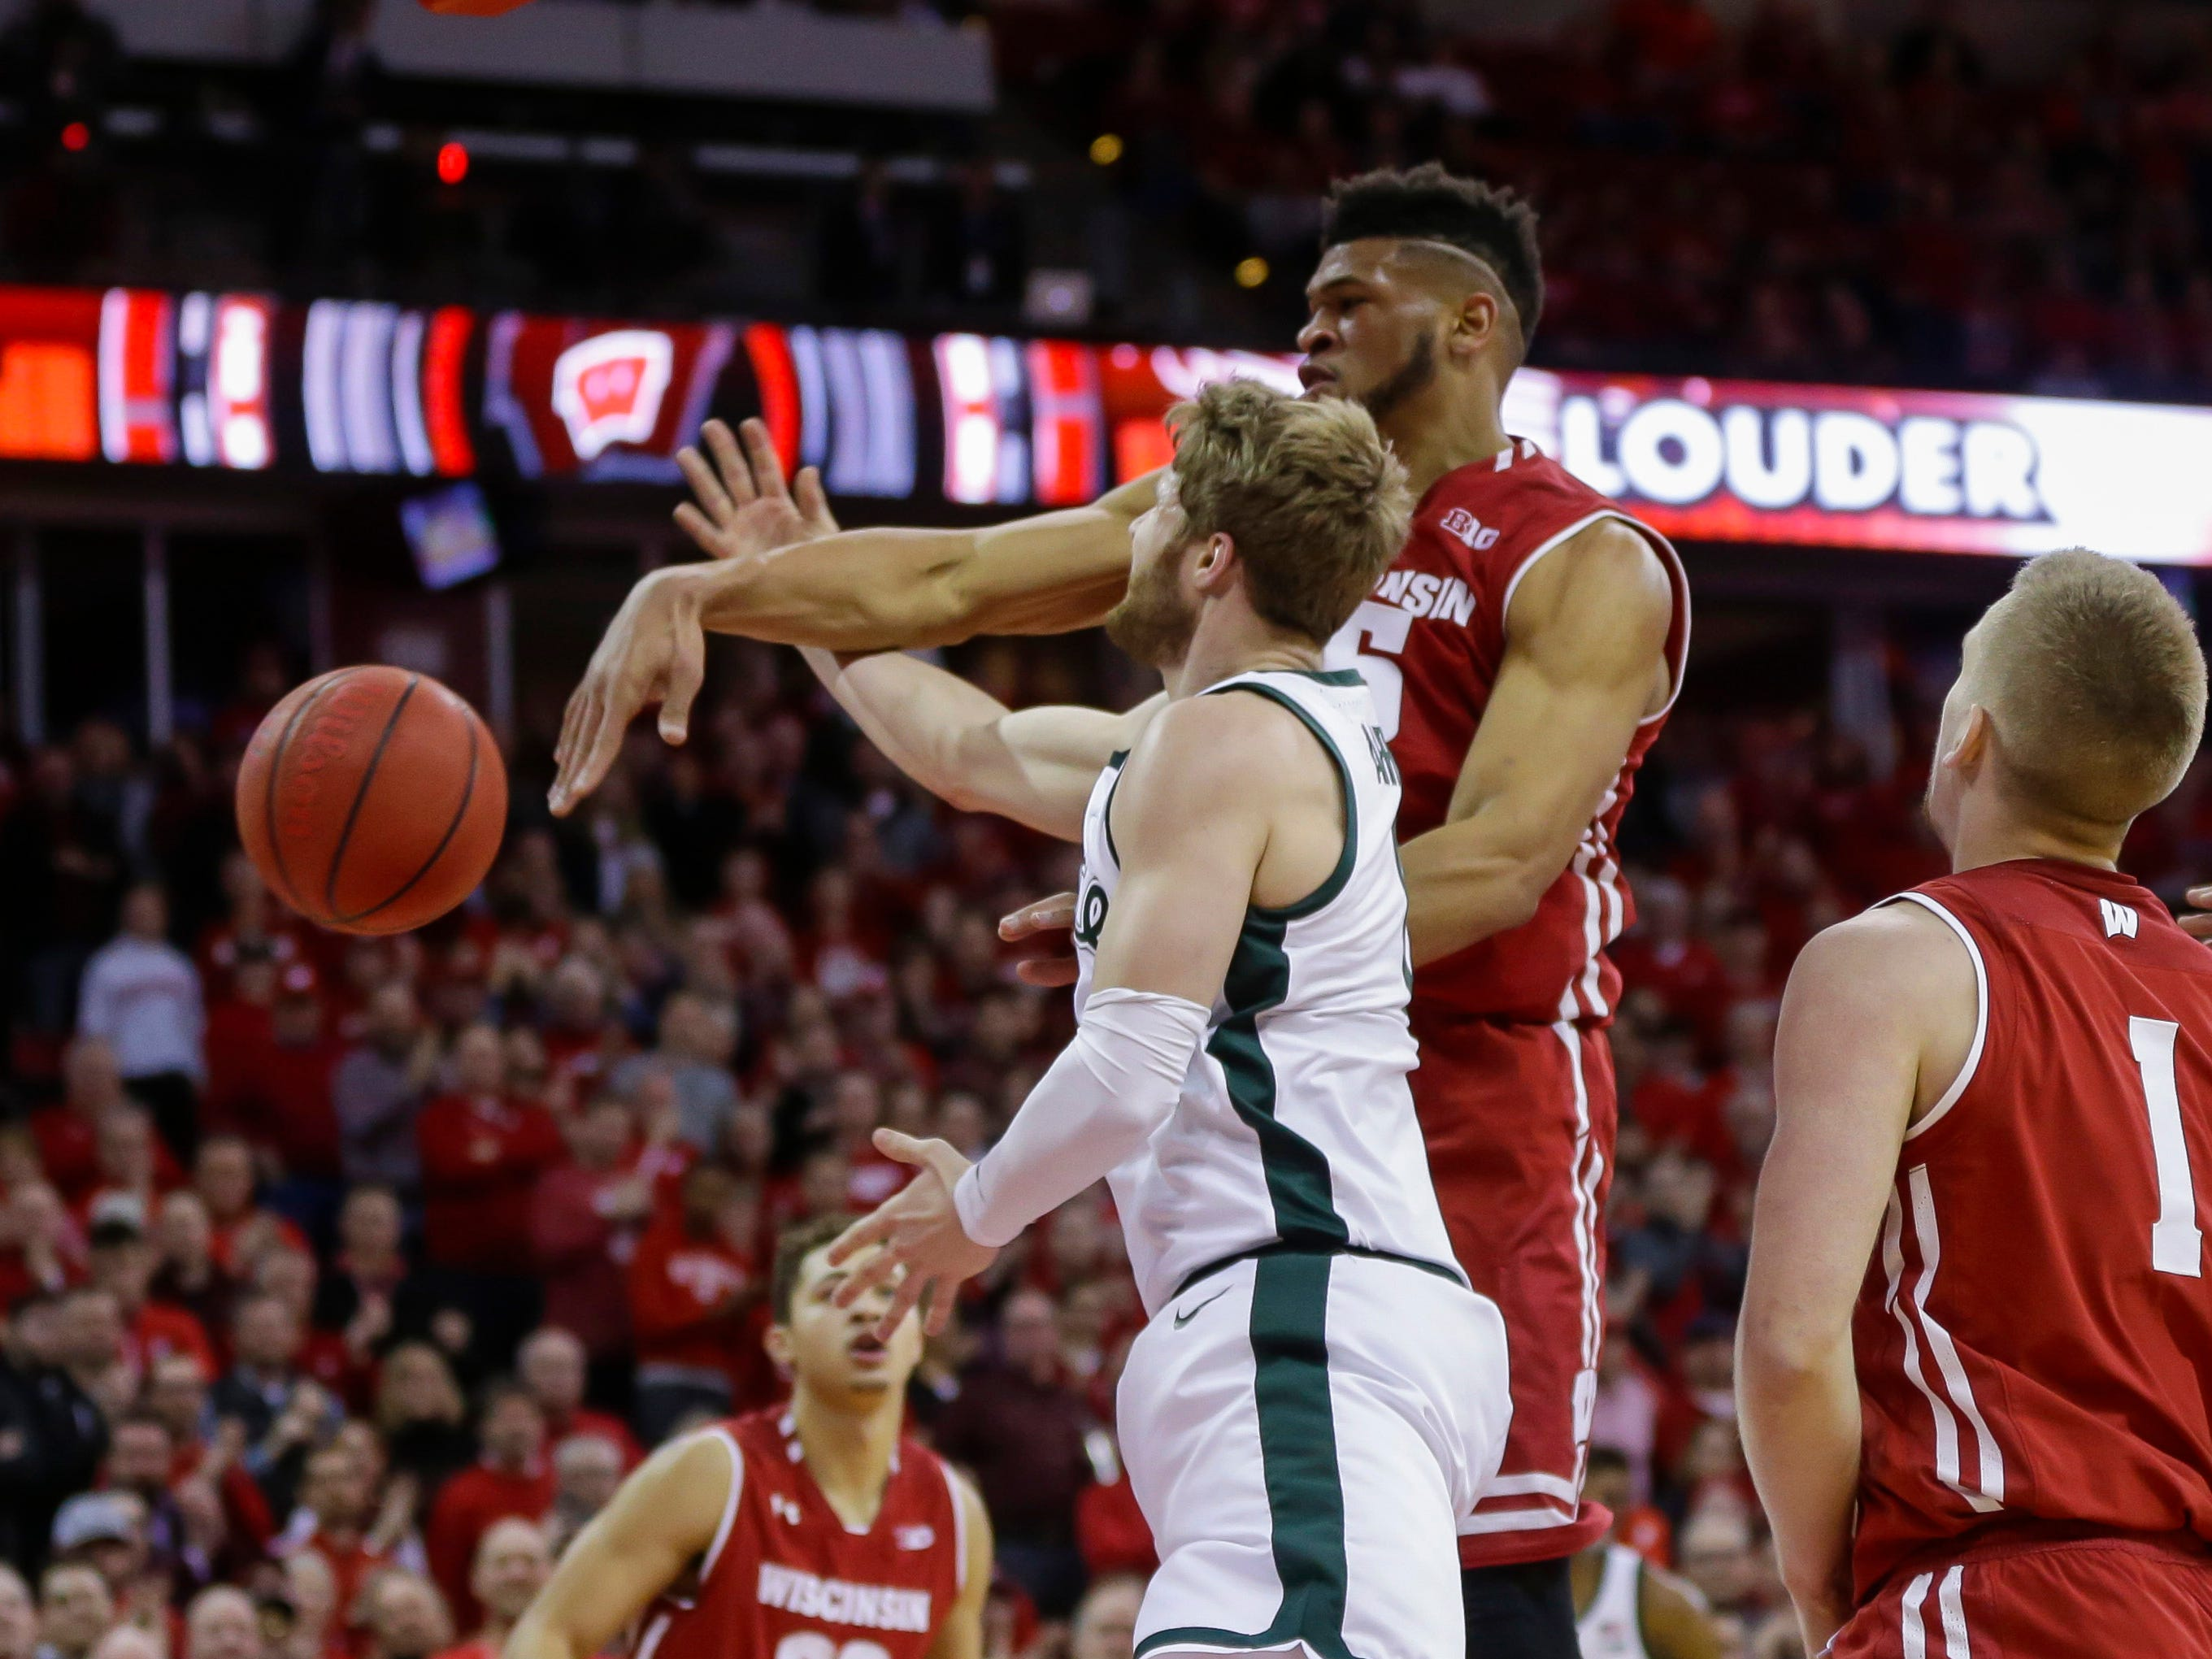 Wisconsin's Charles Thomas (15) blocks a a shot by Michigan States's Kyle Ahrens (0) during the first half of an NCAA college basketball game Tuesday, Feb. 12, 2019, in Madison, Wis.